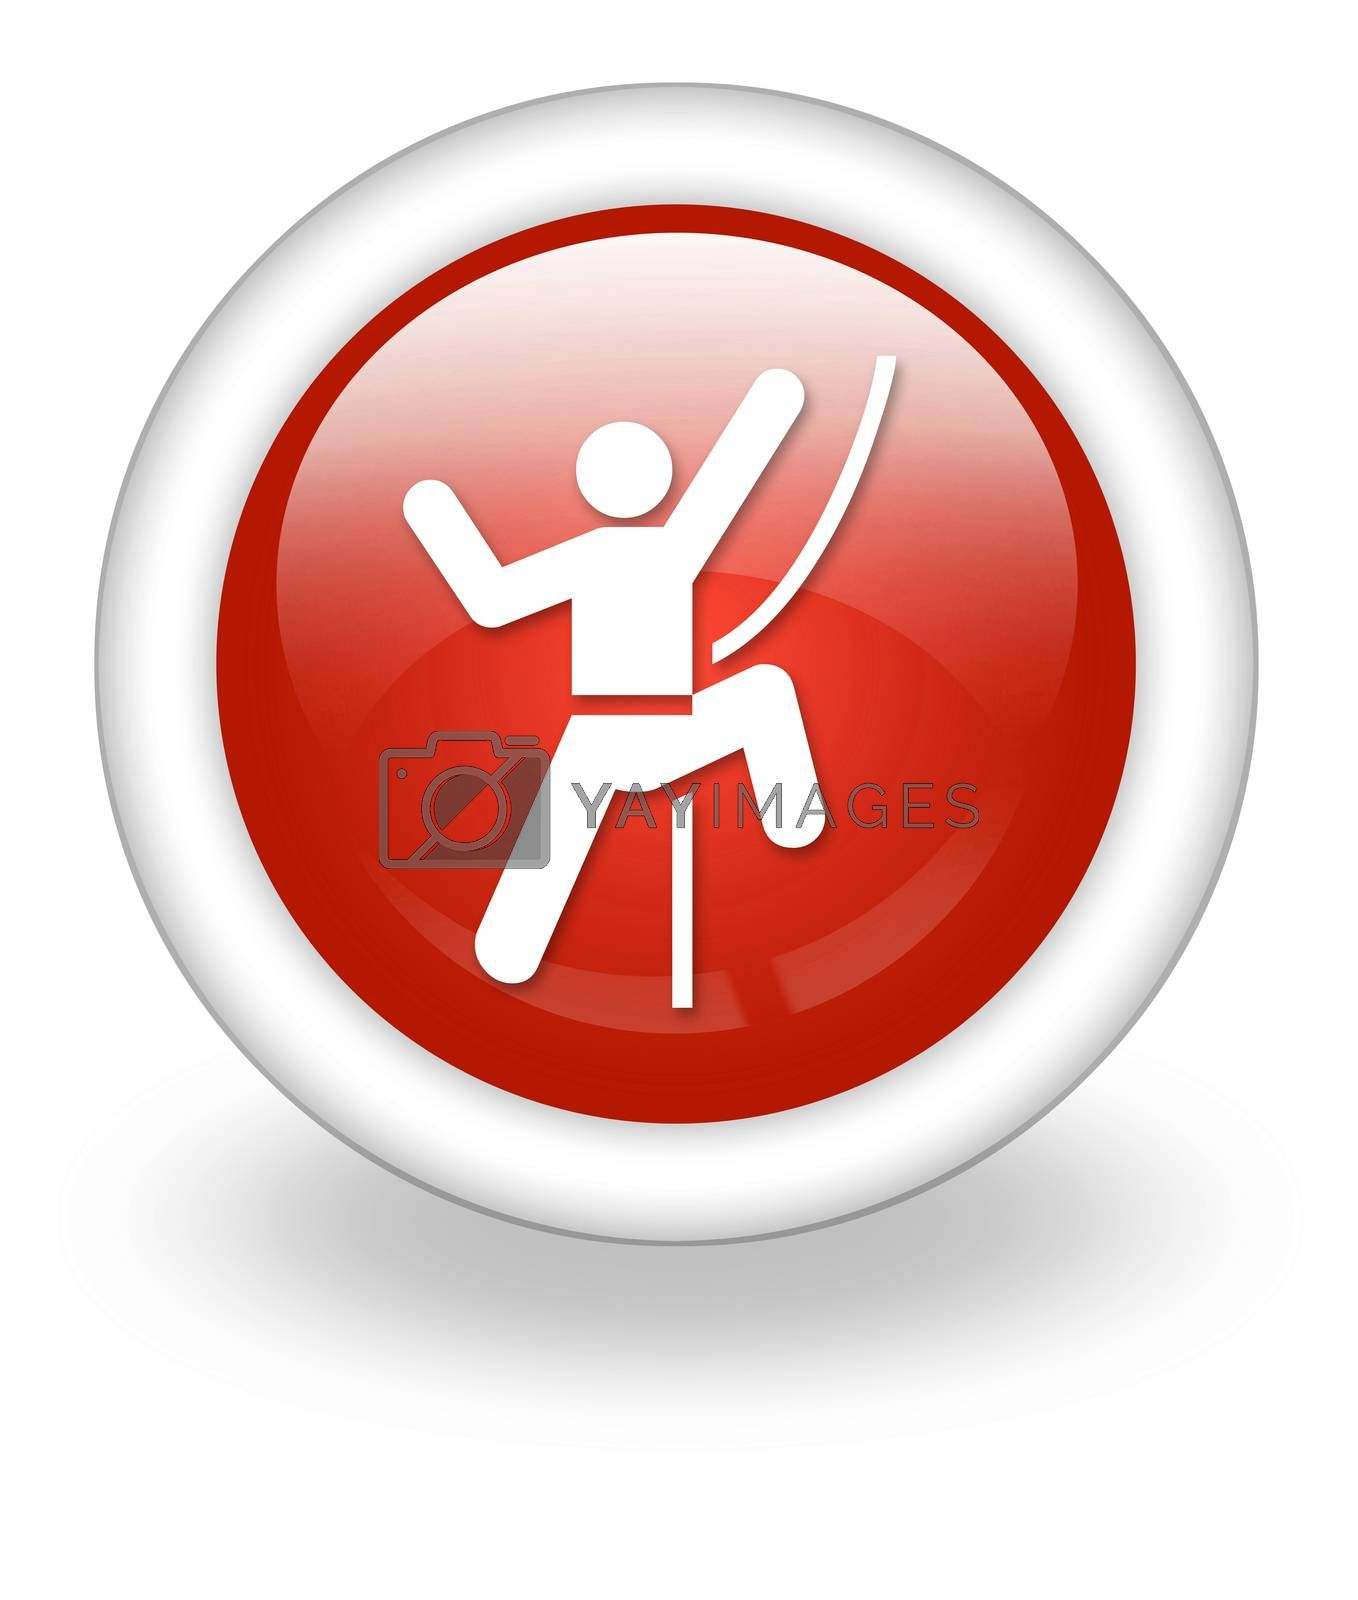 Icon, Button, Pictogram Rock Climbing by mindscanner